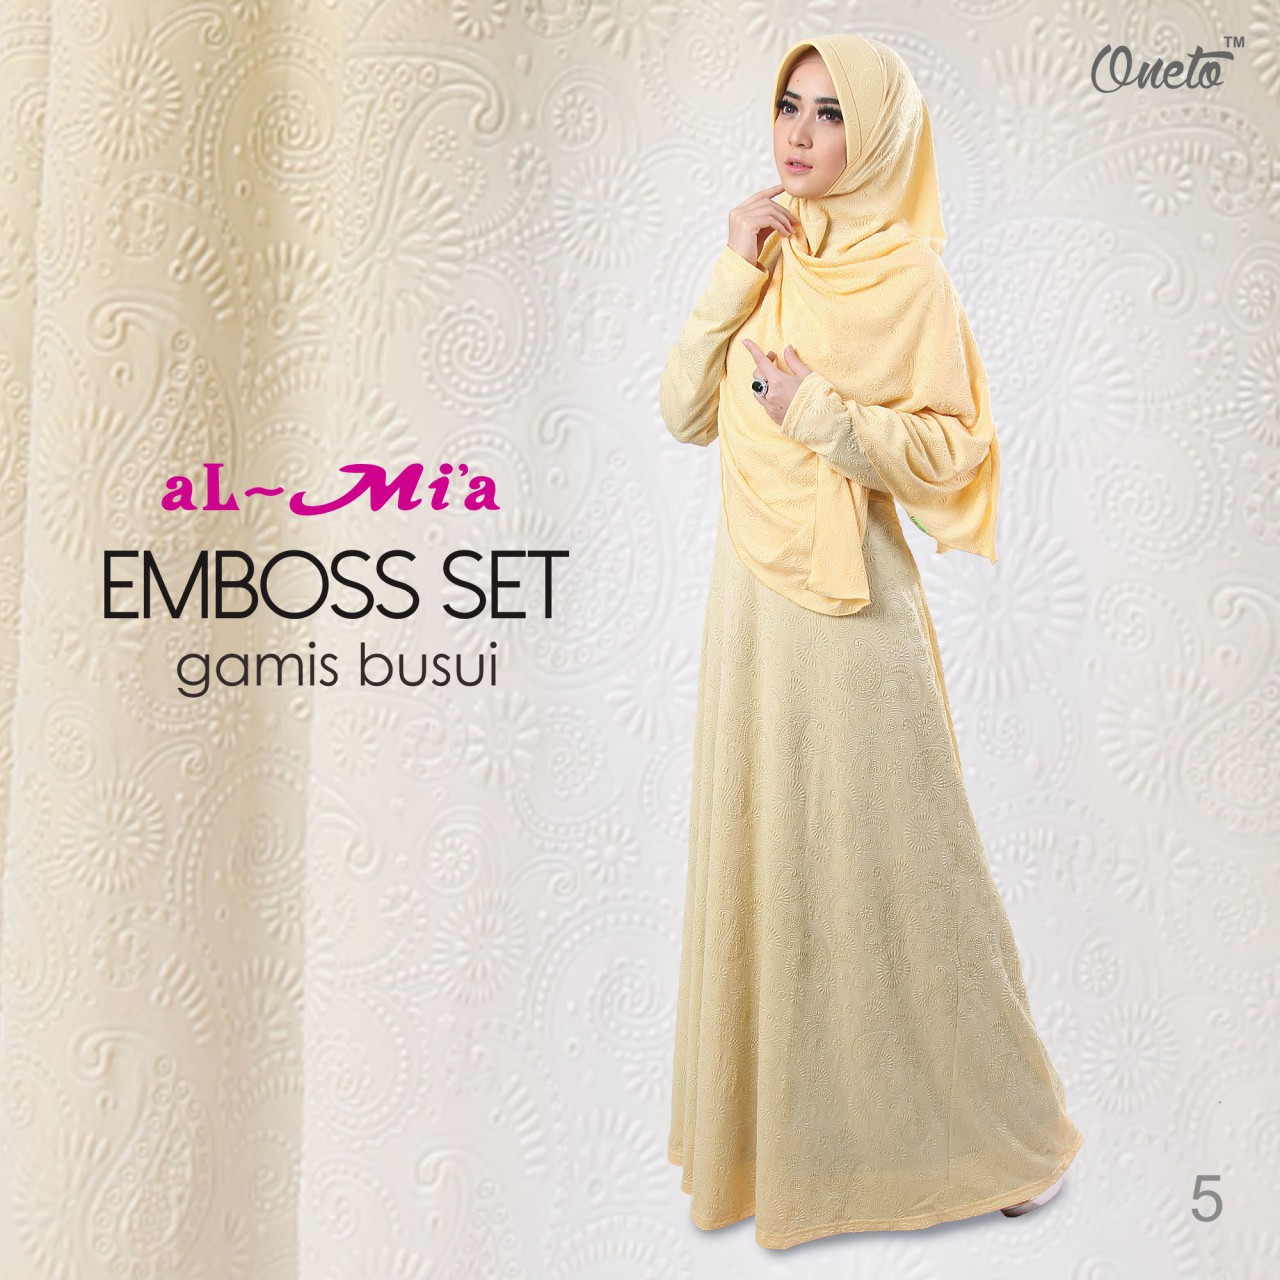 oneto gamis almia embos set yellow